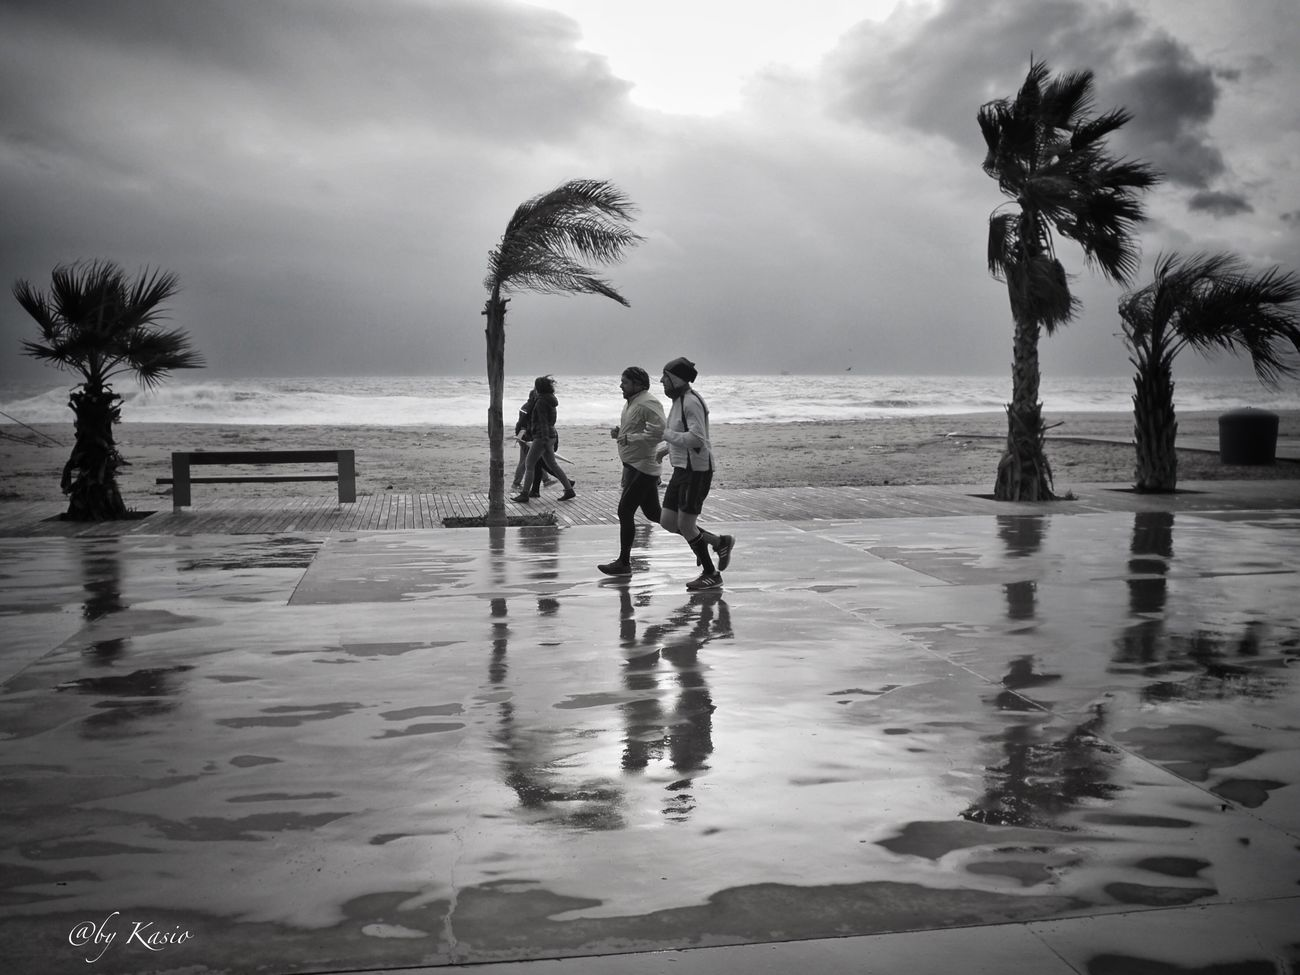 Contra viento y marea... Real People Sea Full Length Palm Tree Sky Beach Water Leisure Activity Scenics Cloud - Sky Eye4photography  Capture The Moment Olympus Olympus Om-d E-m10 EyeEm Best Shots City Life City BW Collection Bw Photography Streetphotography Street Photography